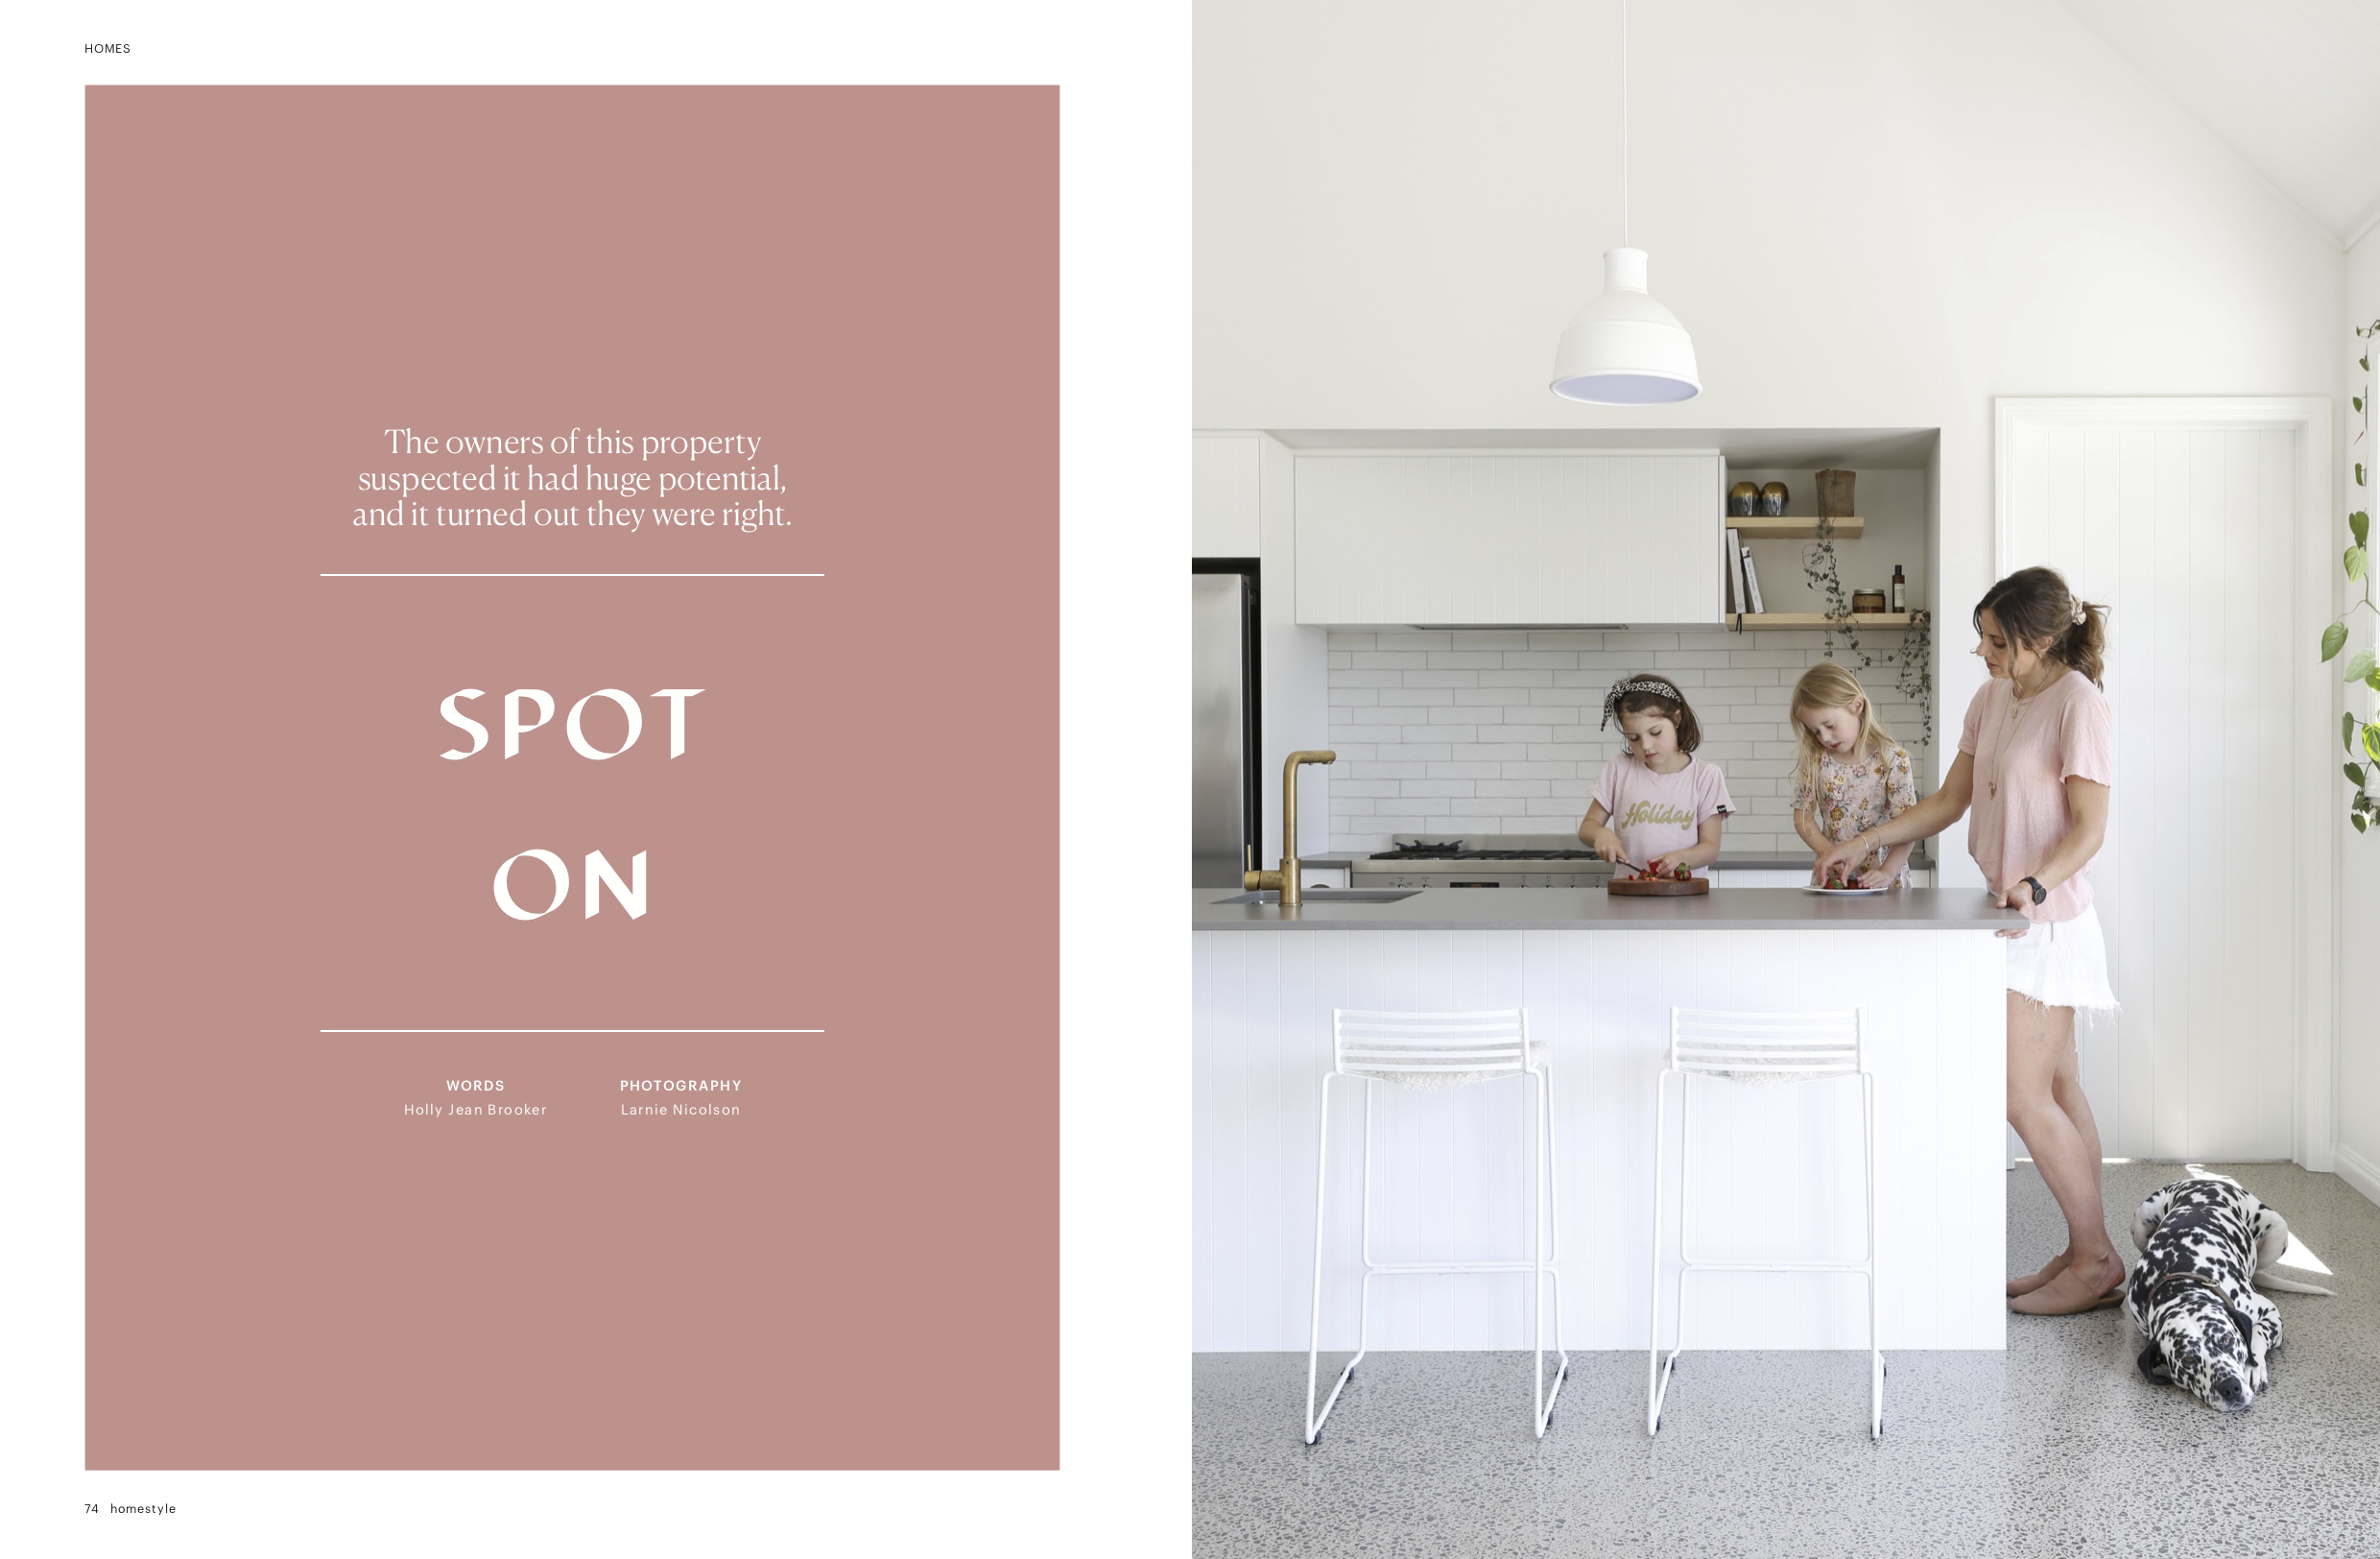 Homestyle Magazine 2019 - The owners of this property suspected it had huge potential and it turned out they were right!Words by Holly Jean BrookerPhotograpy by Larnie Nicolson